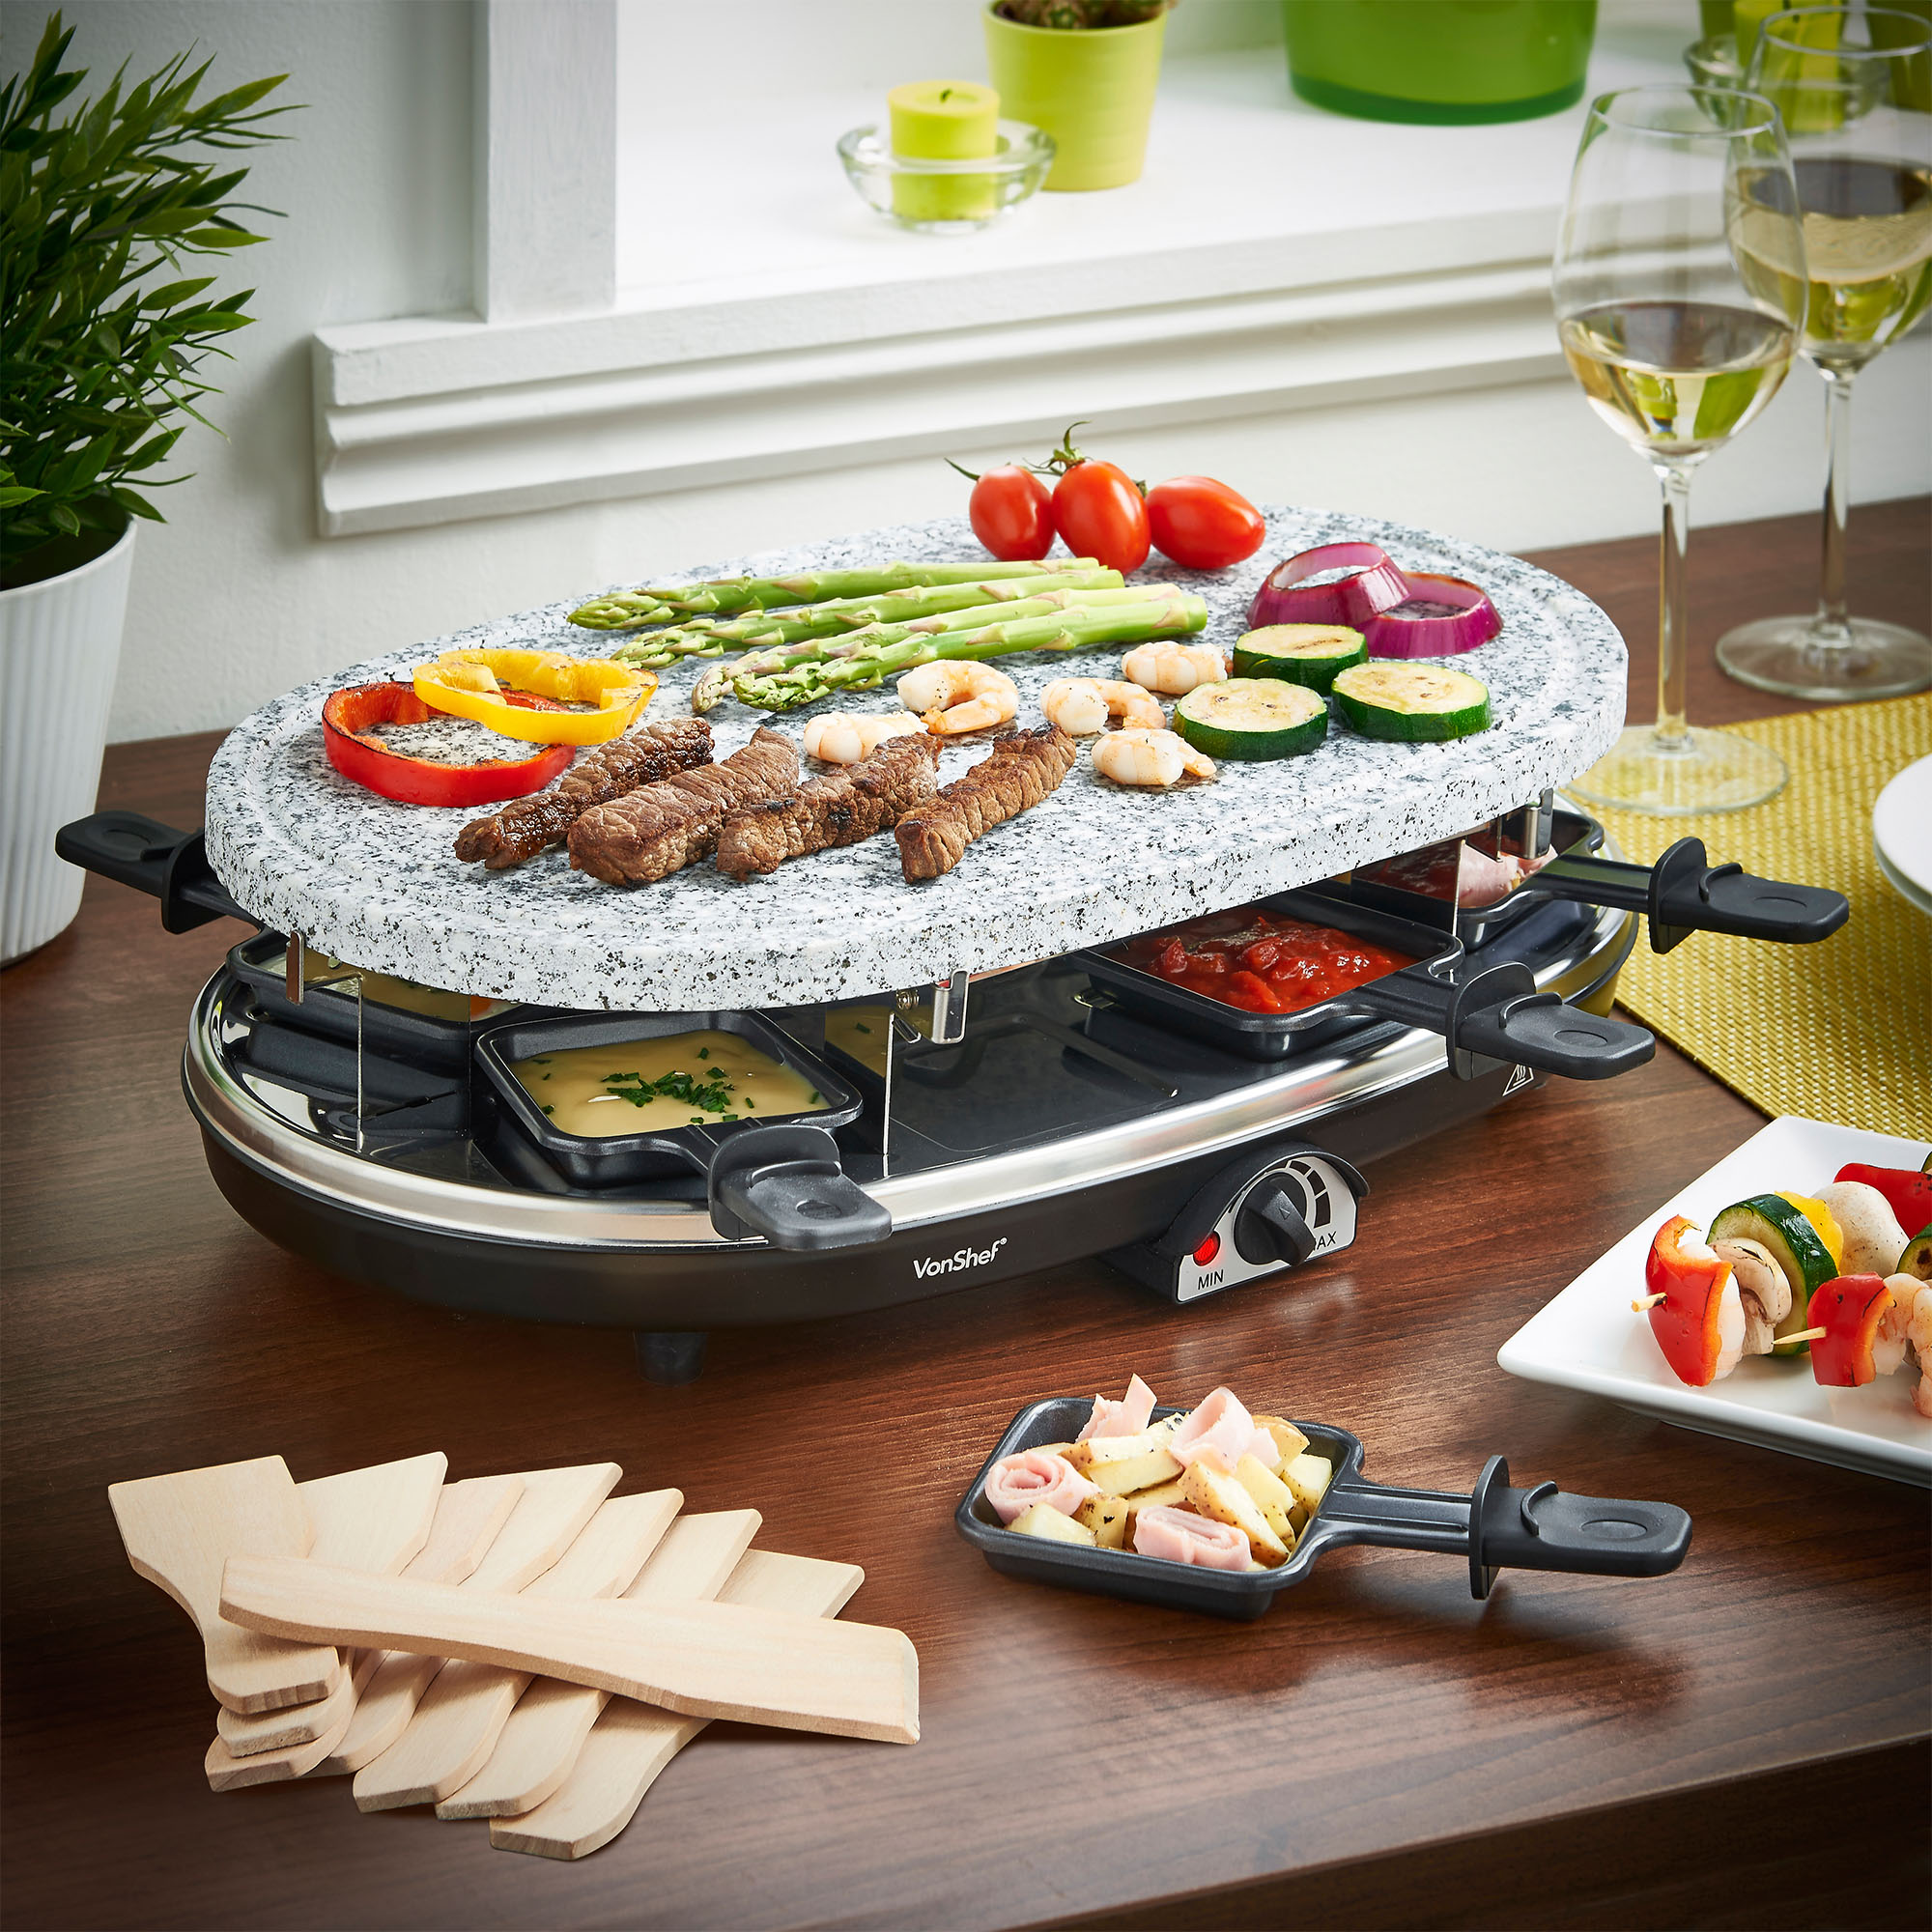 Vonshef 8 Person Natural Stone Plate Raclette Grill Table